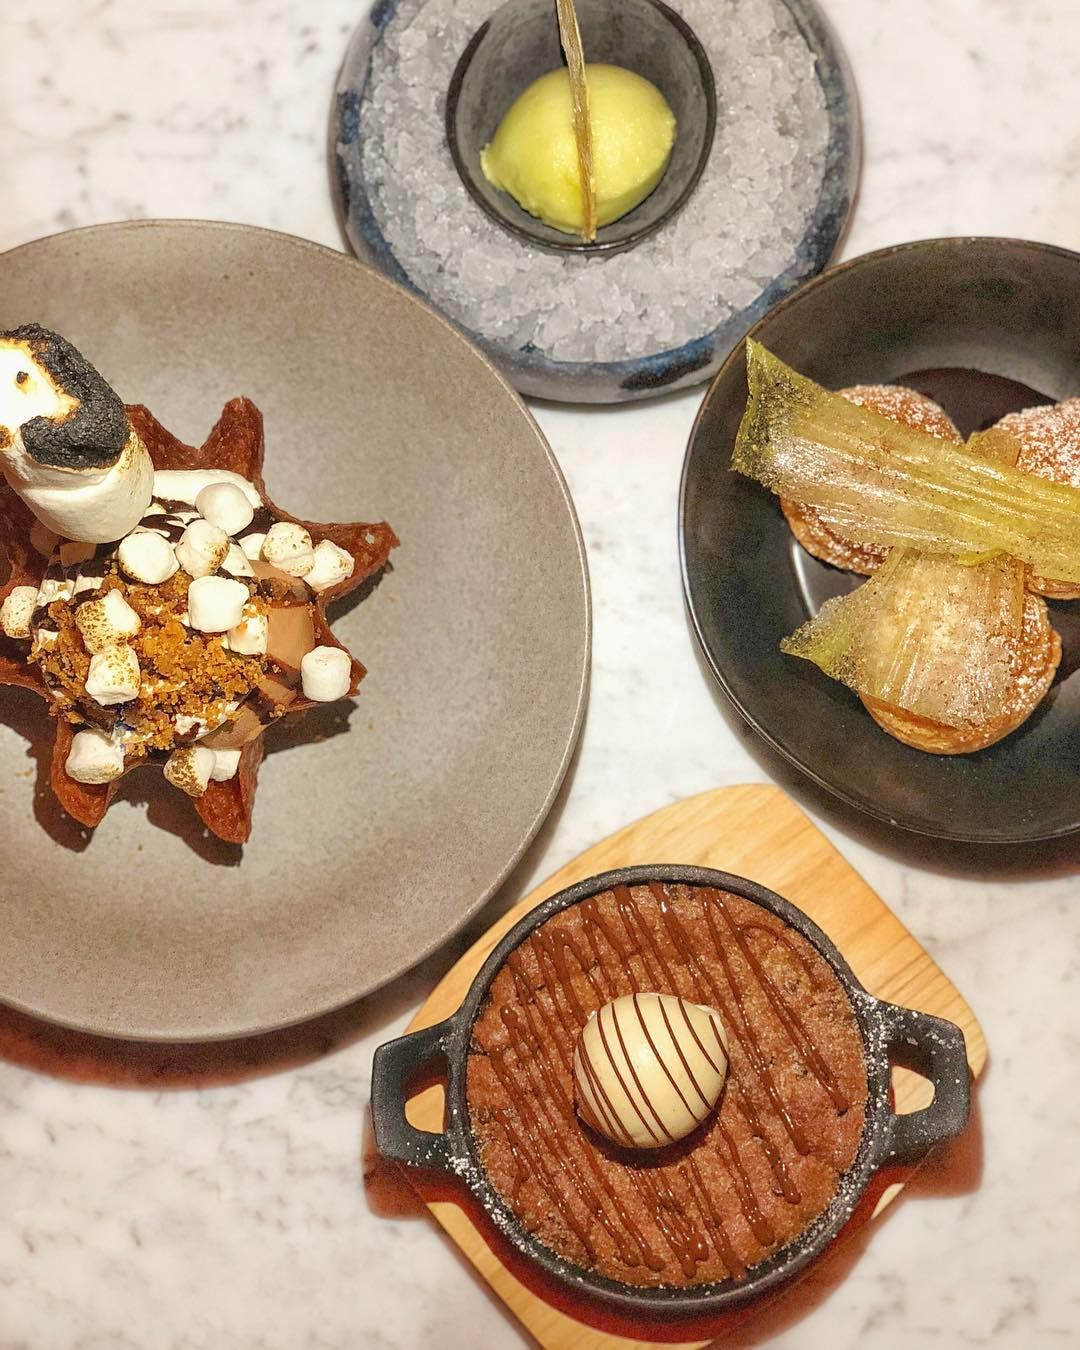 Fluffy S Mores Cookie Skillet Sorbets Profiteroles Some Of The Many Desserts Recommended At Haus Bh The New In 2020 Instagram Food Cravings Decorative Plates